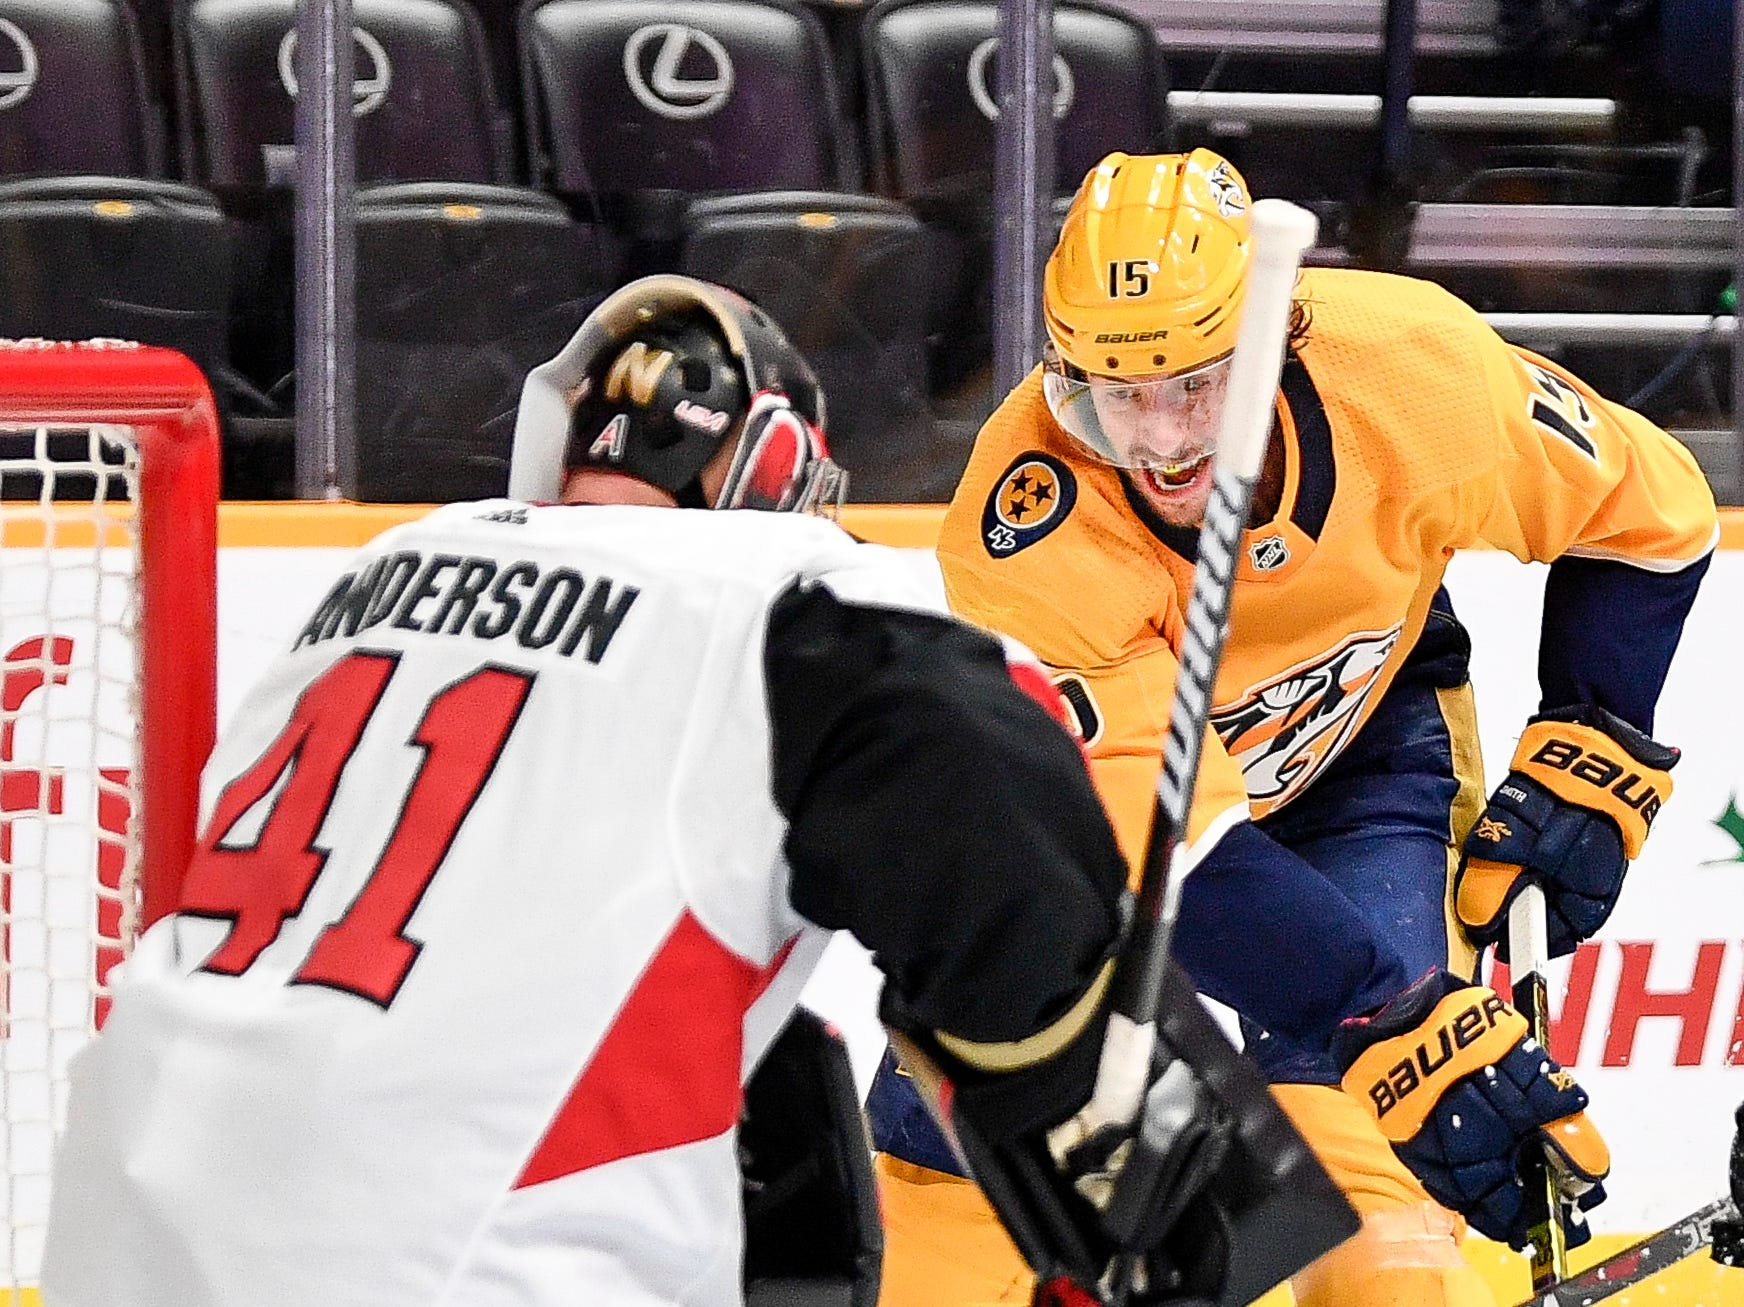 Nashville Predators right wing Craig Smith (15) moves in to score a goal against Ottawa Senators goaltender Craig Anderson (41) during the third period at Bridgestone Arena in Nashville, Tenn., Tuesday, Dec. 11, 2018.